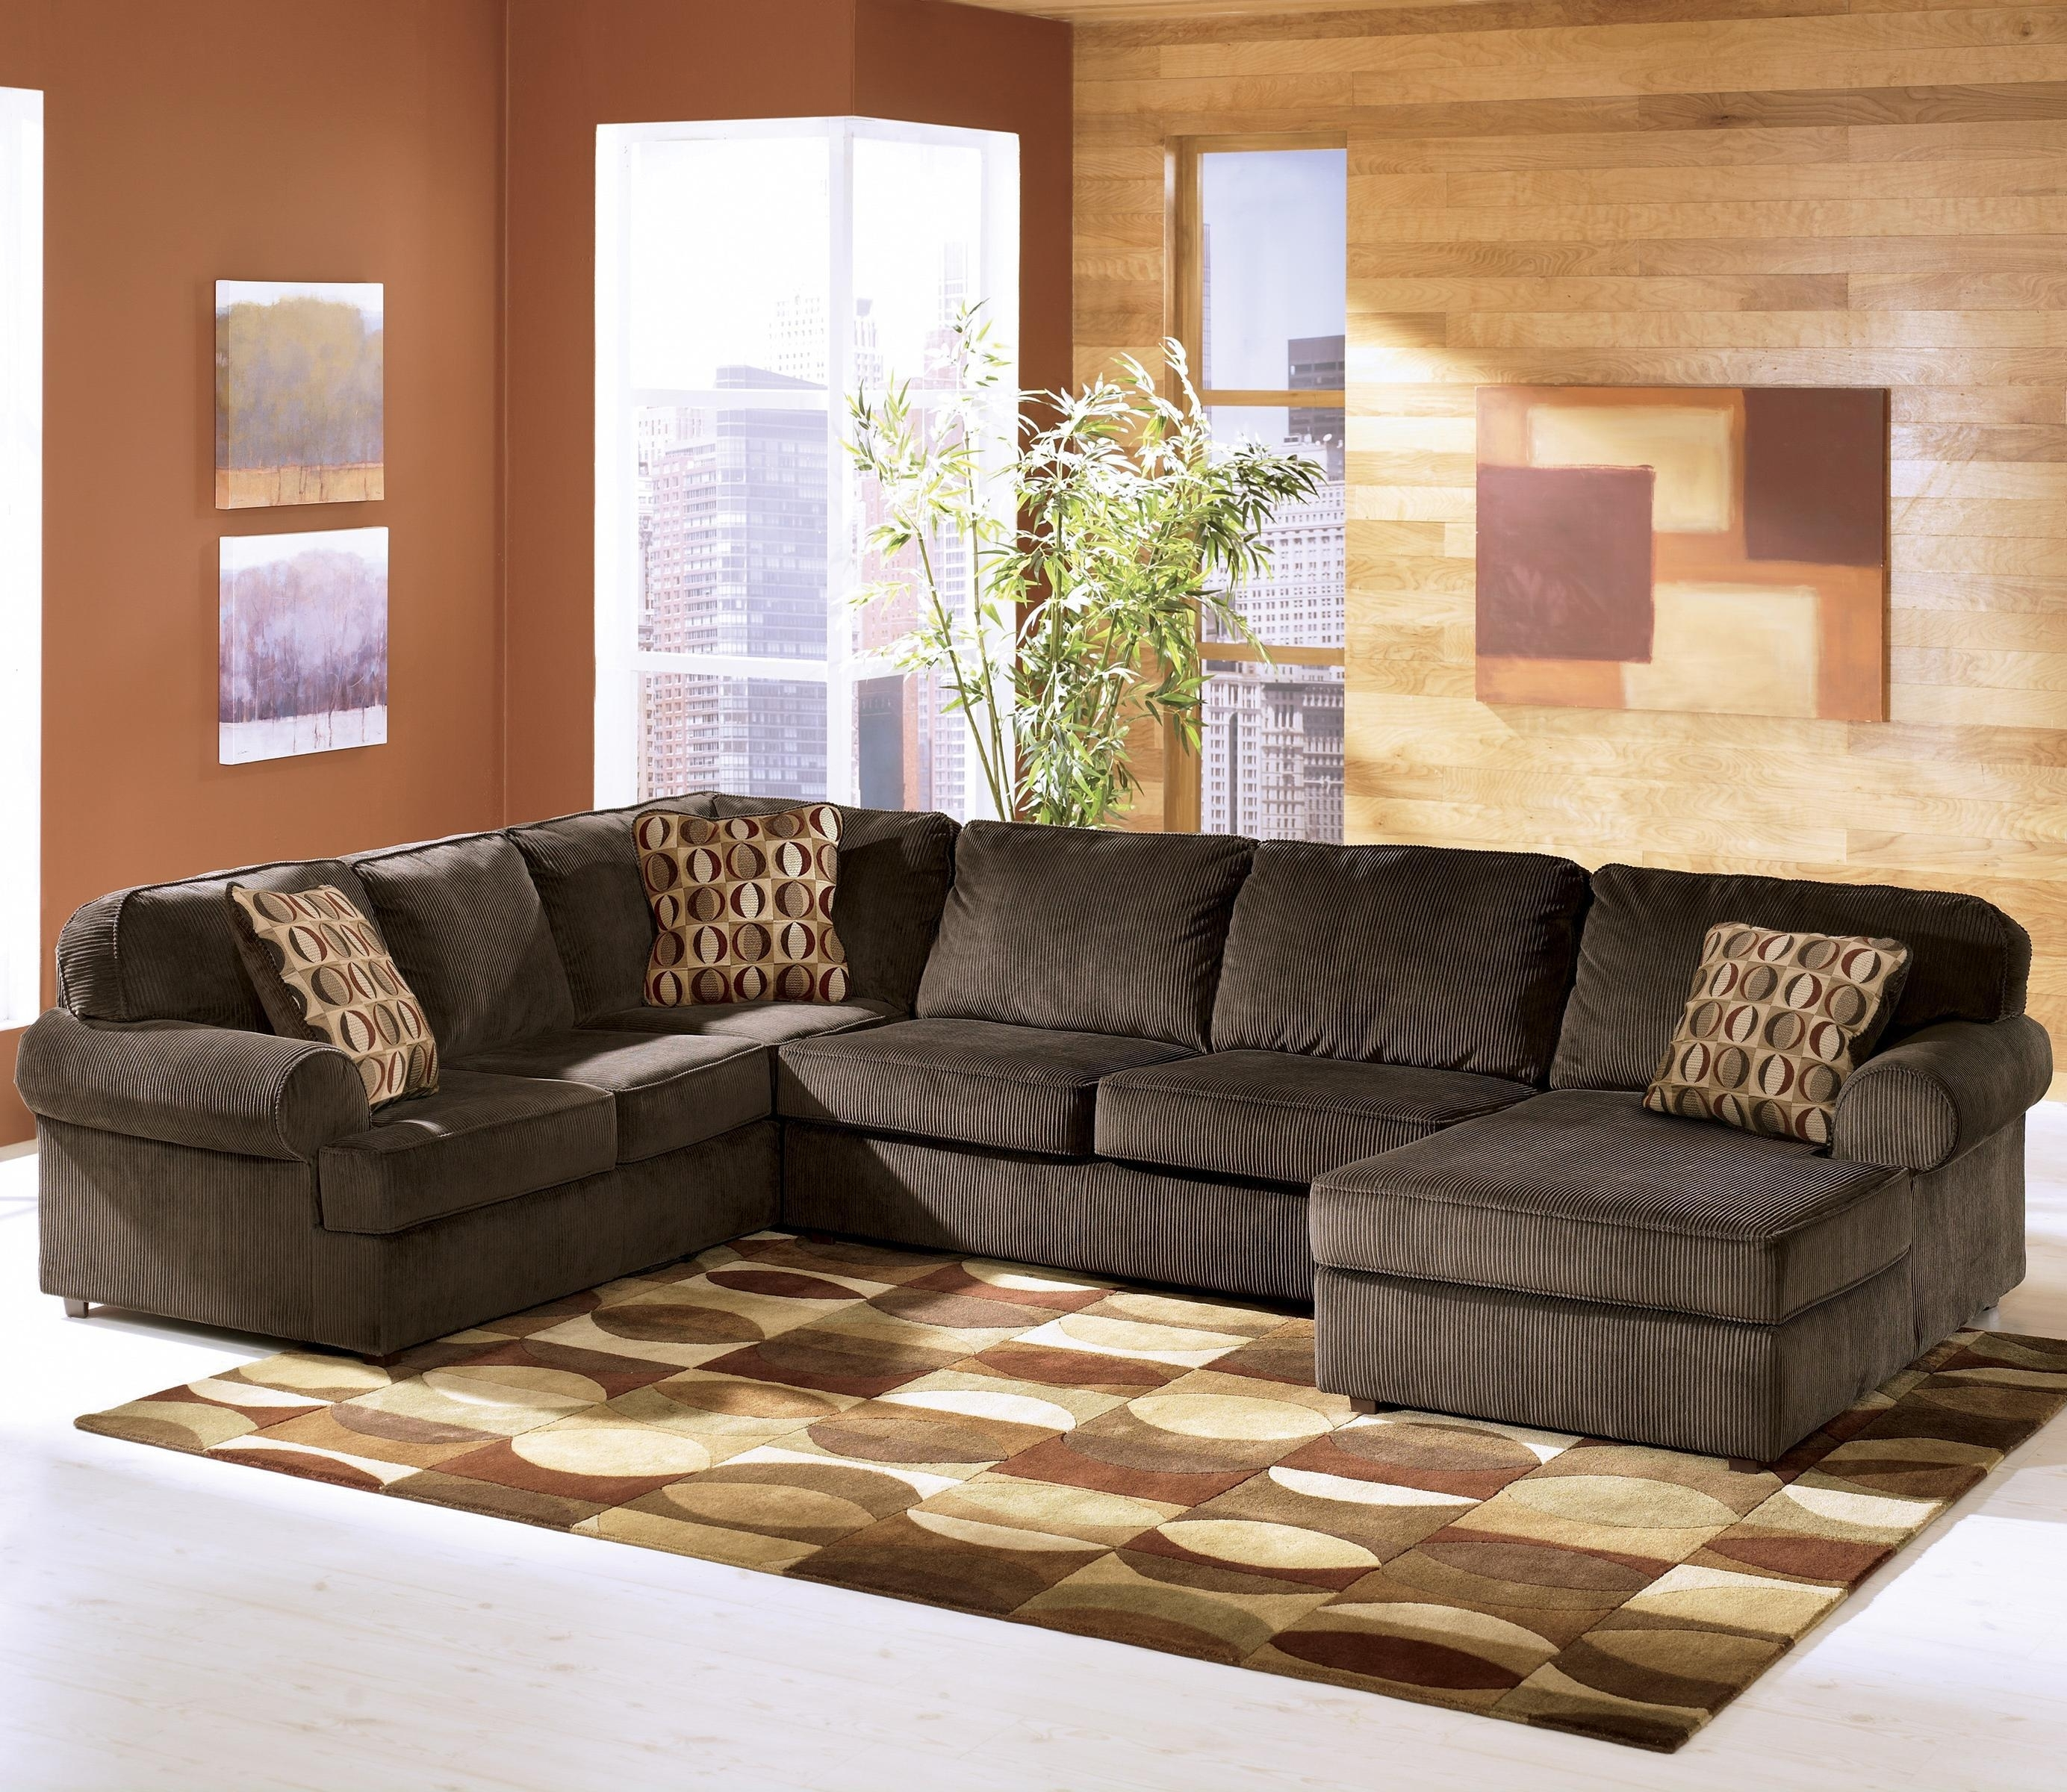 Newest Ashley Furniture Vista – Chocolate Casual 3 Piece Sectional With Inside Evansville In Sectional Sofas (View 14 of 20)